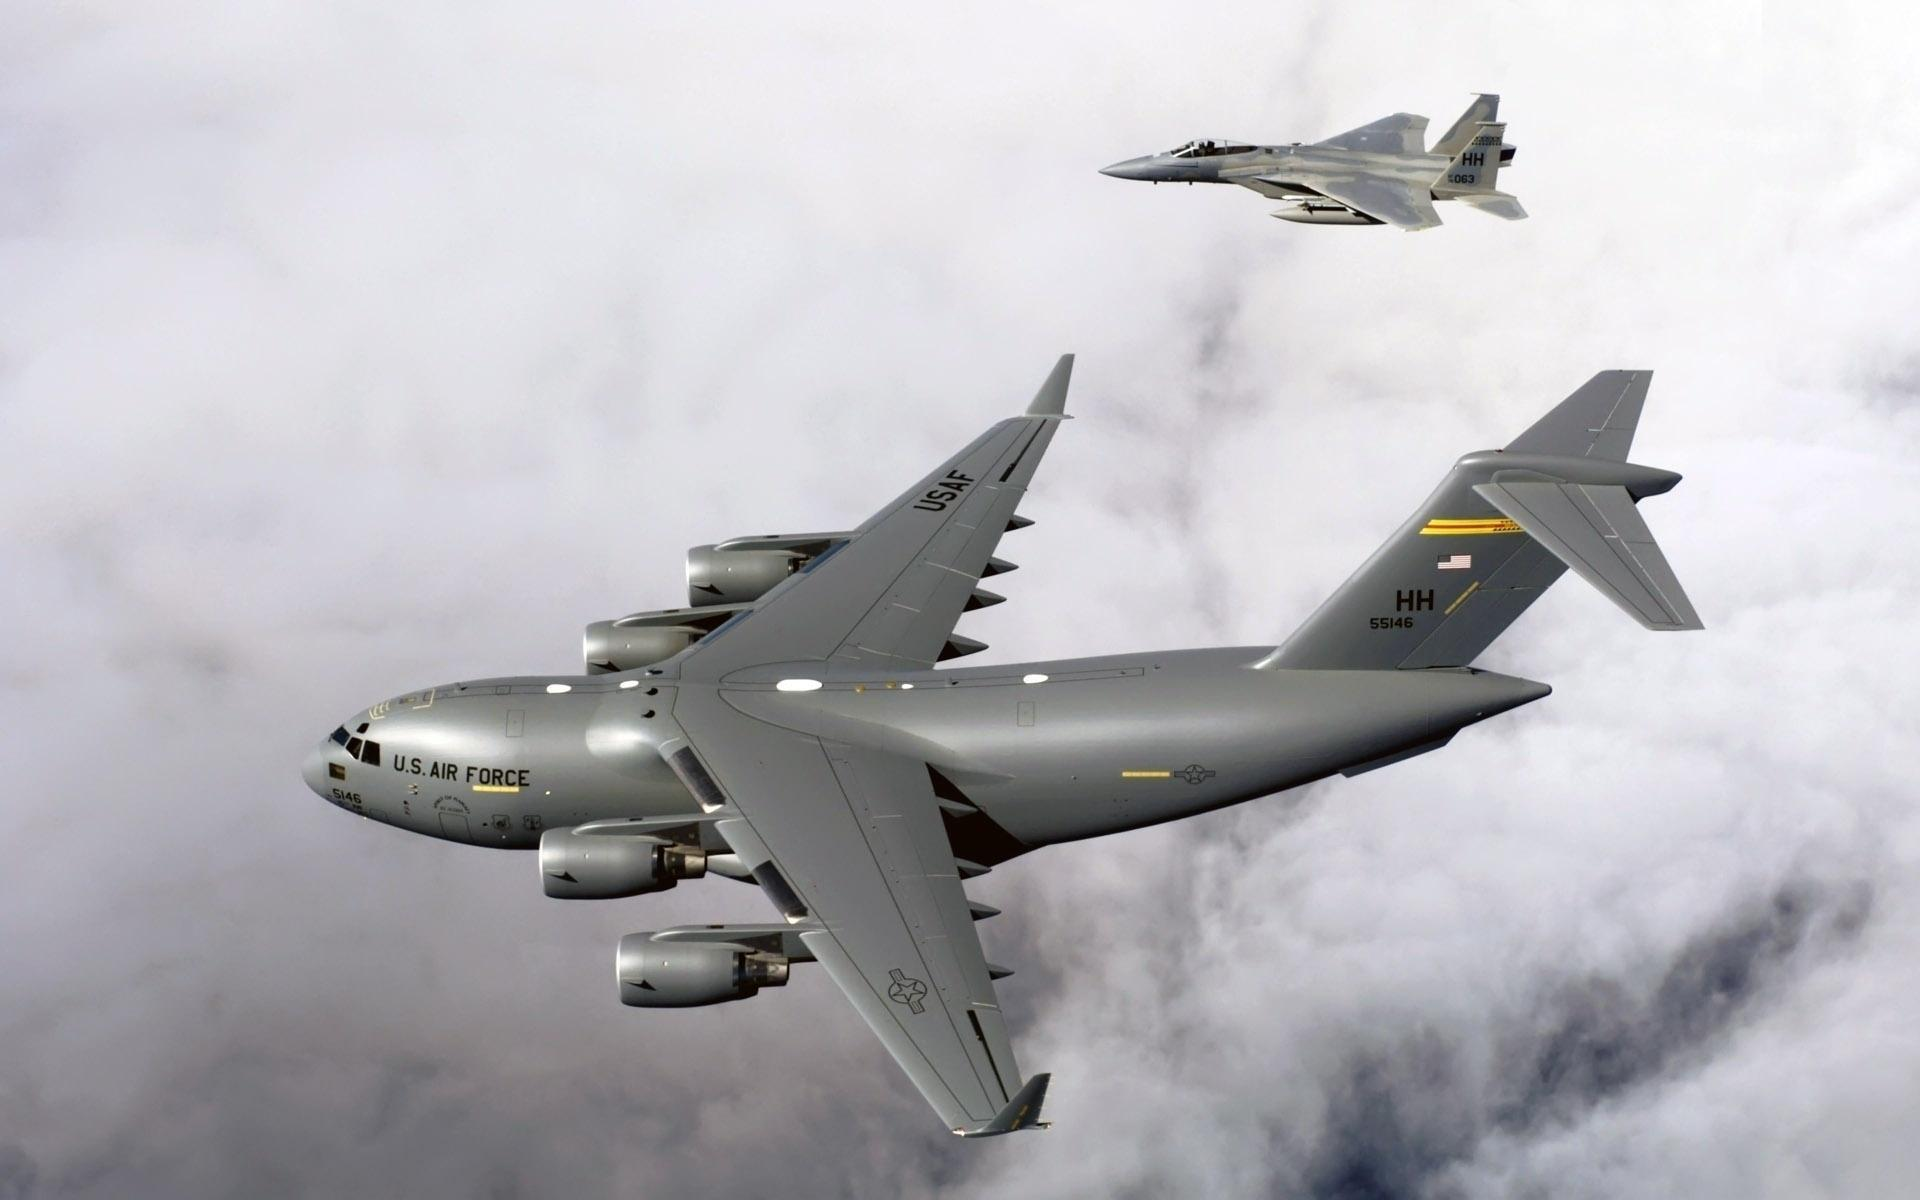 Boeing C-17 Globemaster III wallpapers HD quality